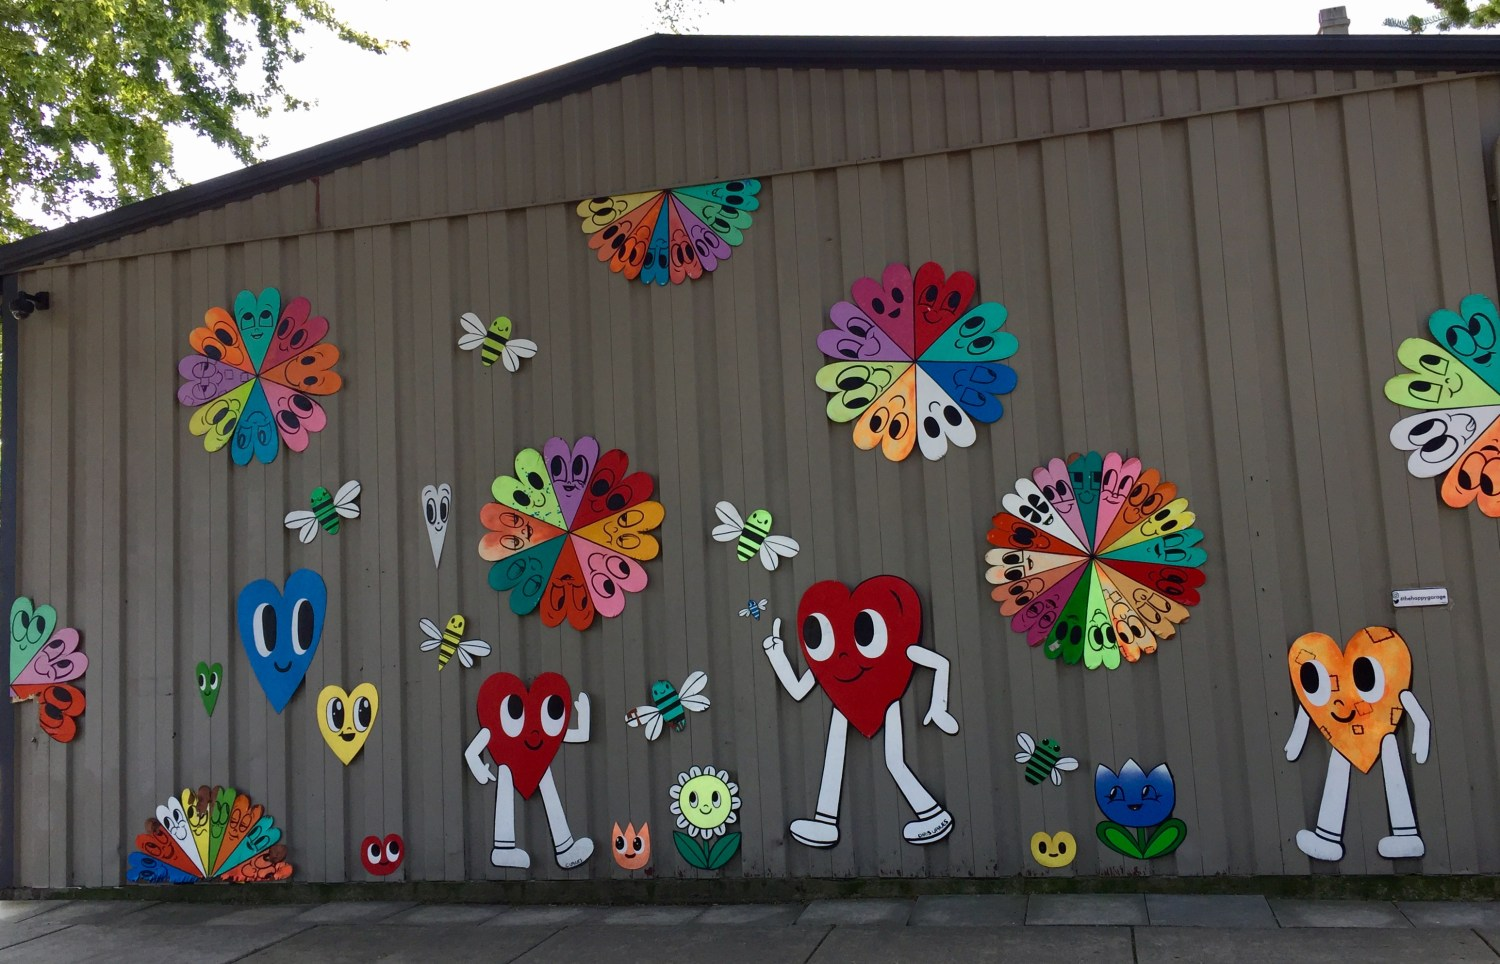 Ravenswood S Happy Garage Art Installation Vanadalized Cbs Chicago